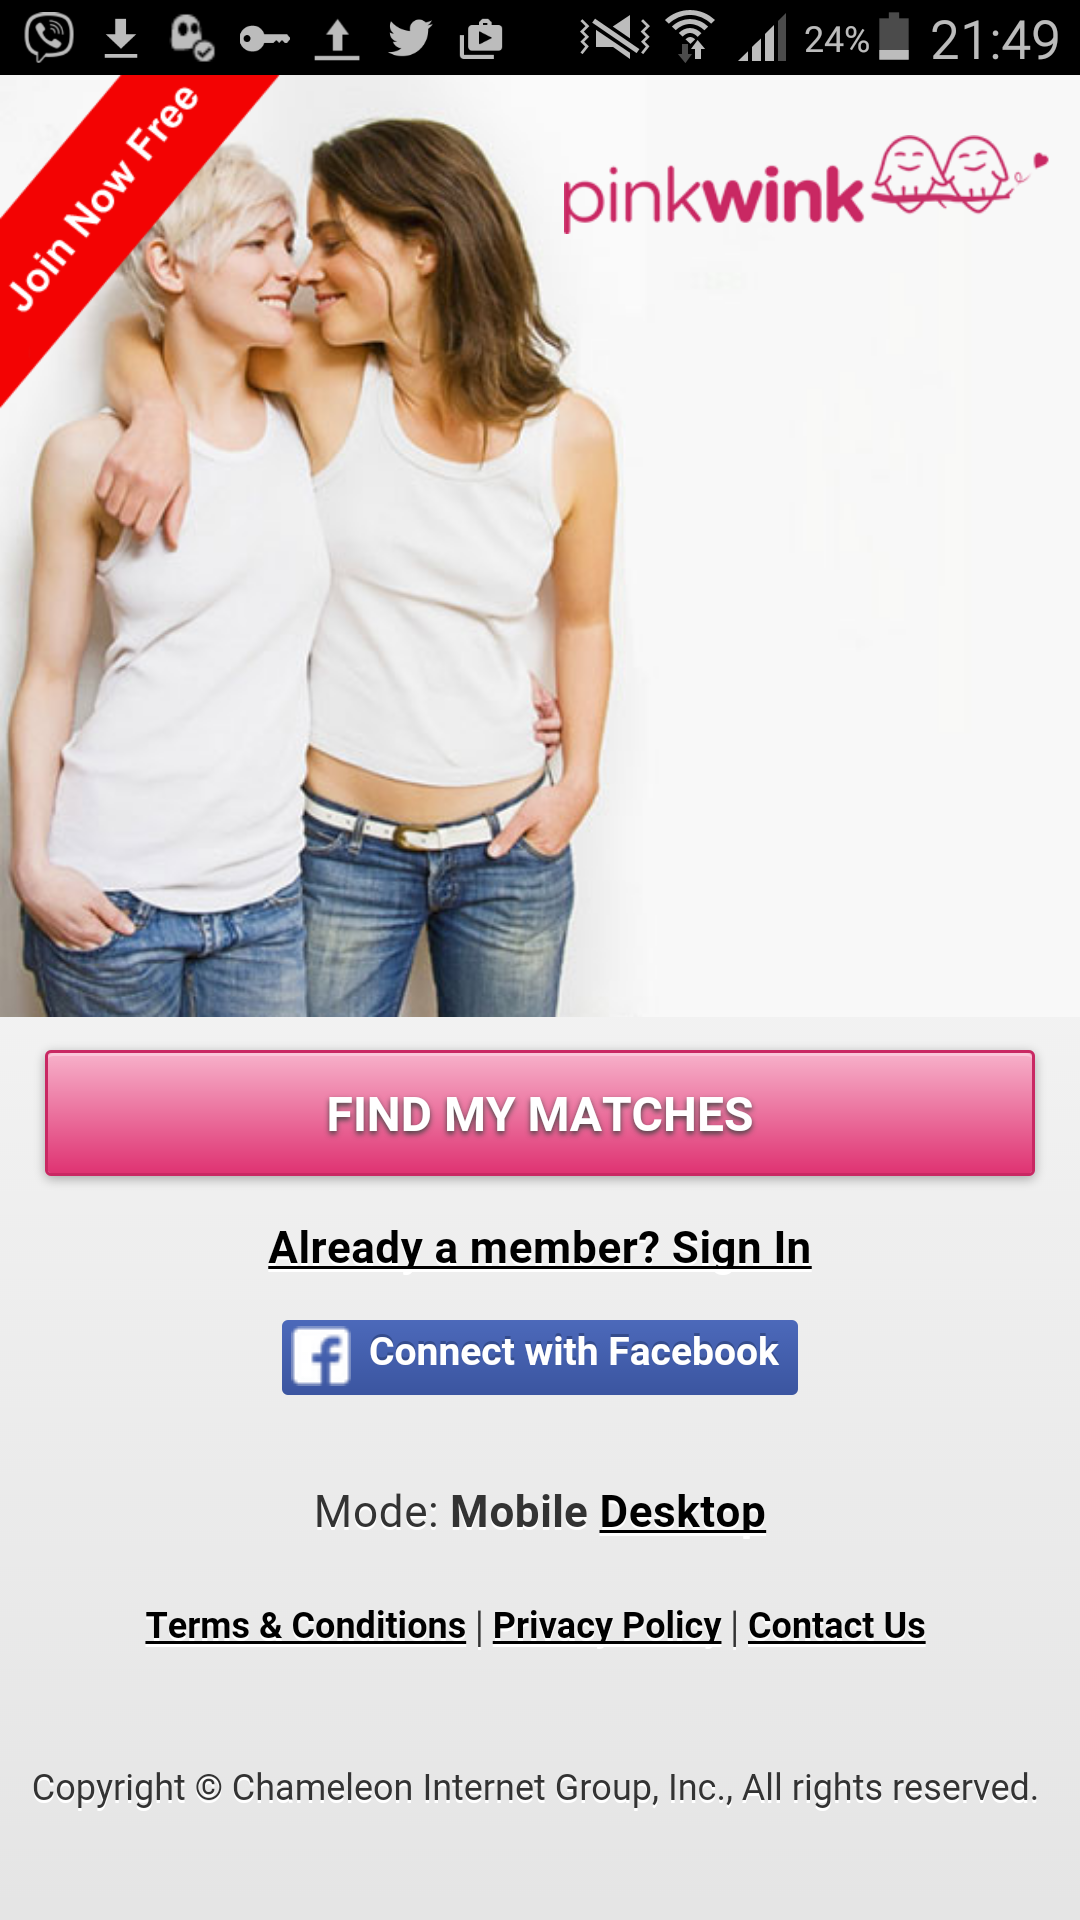 shinnston lesbian dating site Sometimes the hardest part of lesbian dating is actually finding lesbian singles to date here are 5 great places to start: 1 online dating if you really want to meet great lesbian women, you need to get online, and our experts' #1 choice for that is , which you'll see below in our top recommendations.